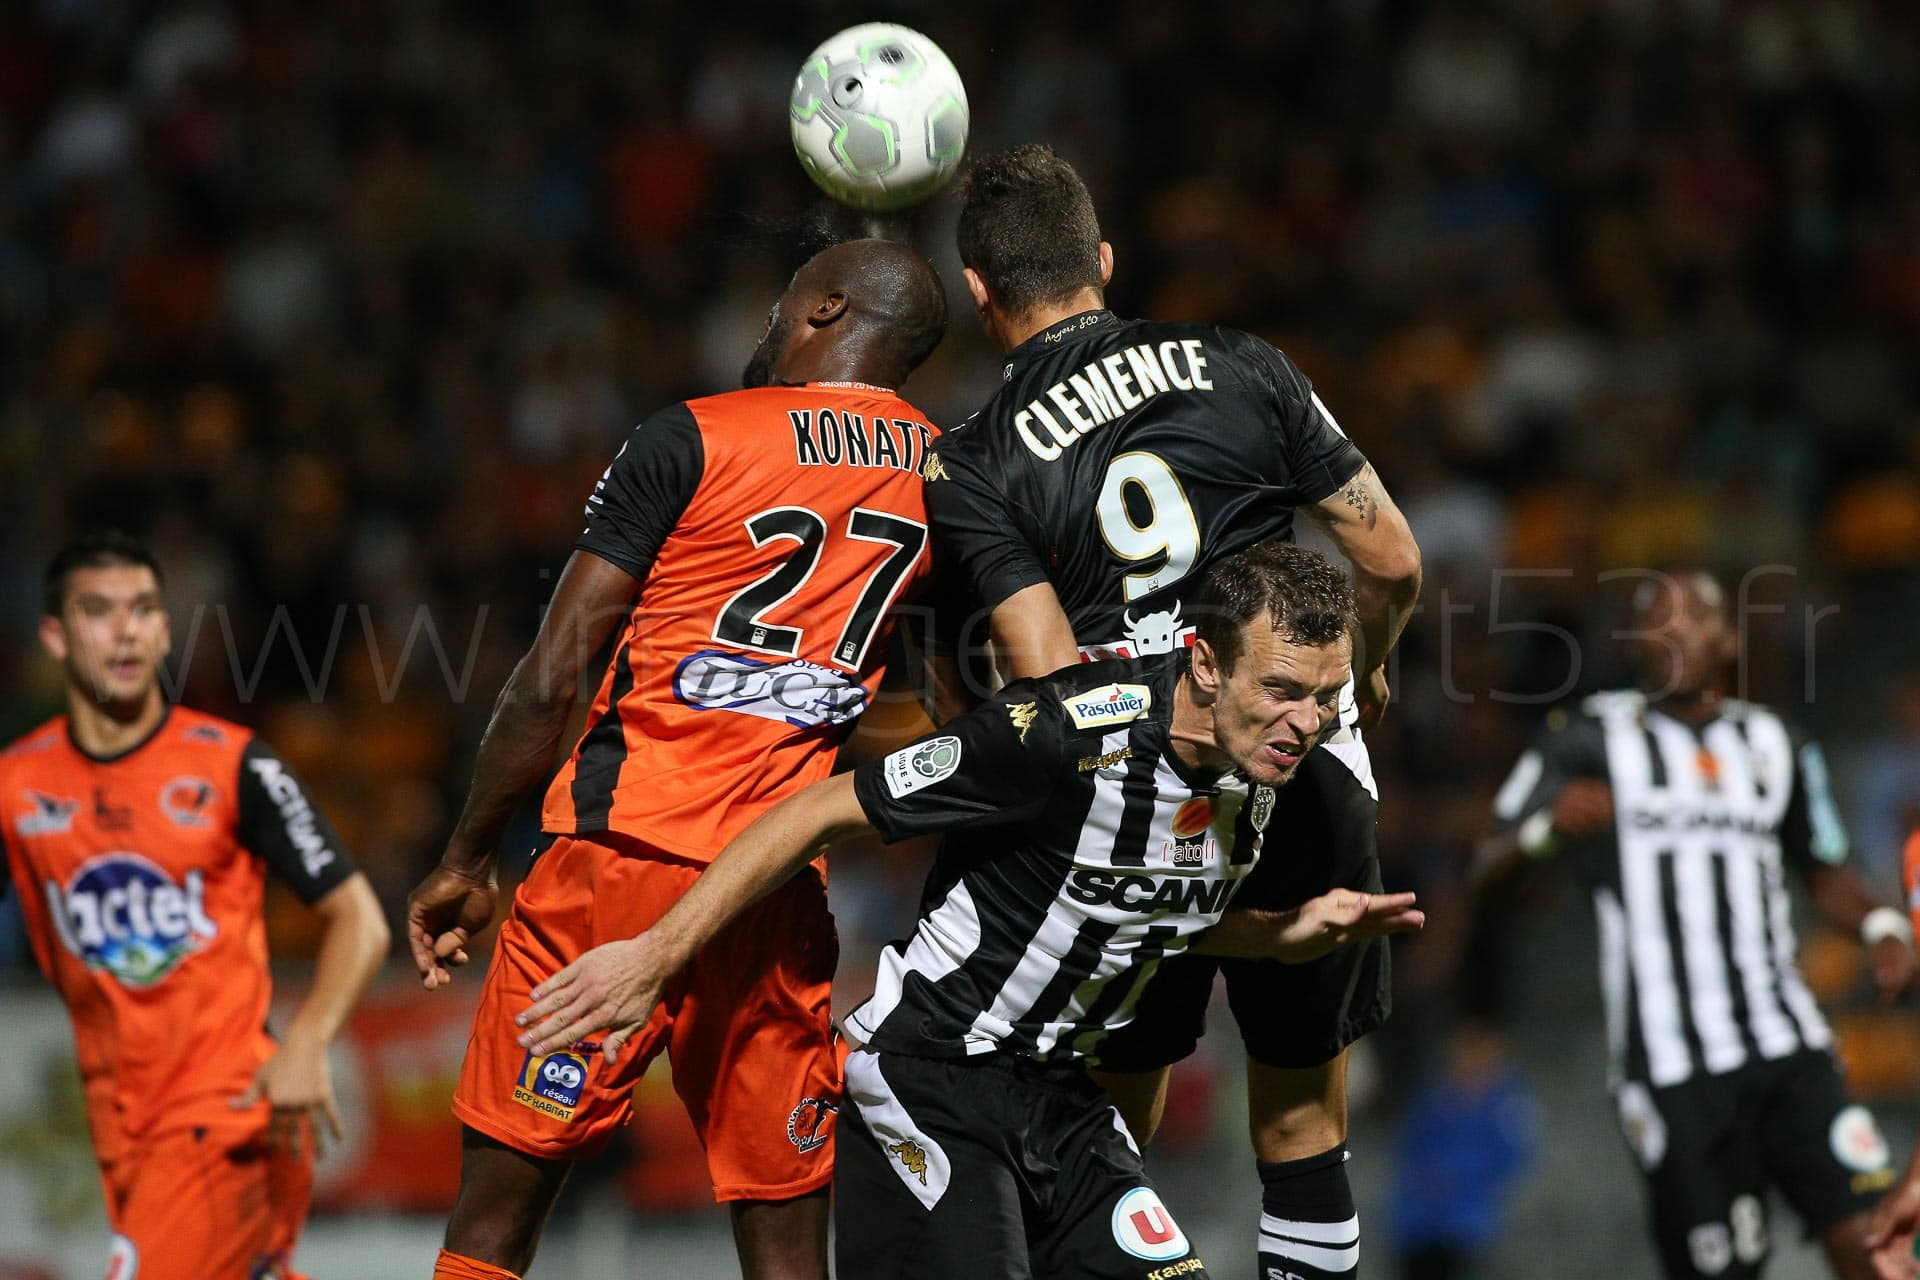 NG-Ligue2-1415-J07-Laval-Angers_22